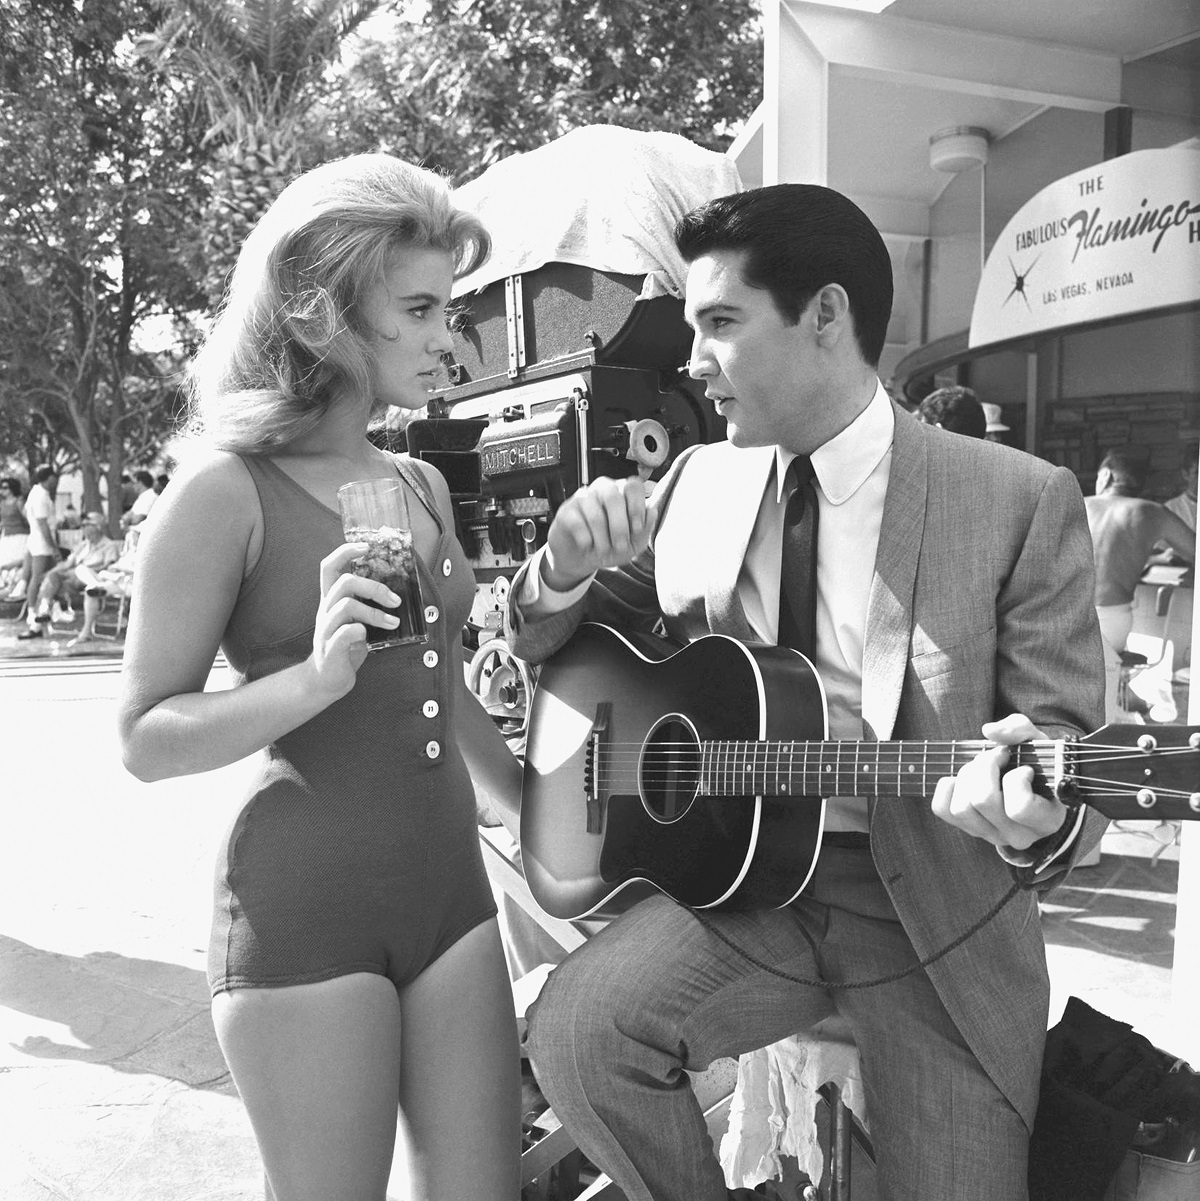 Ann-Margret in a bathing suit and Elvis Presley in a suit playing the guitar as their characters in 'Viva Las Vegas'